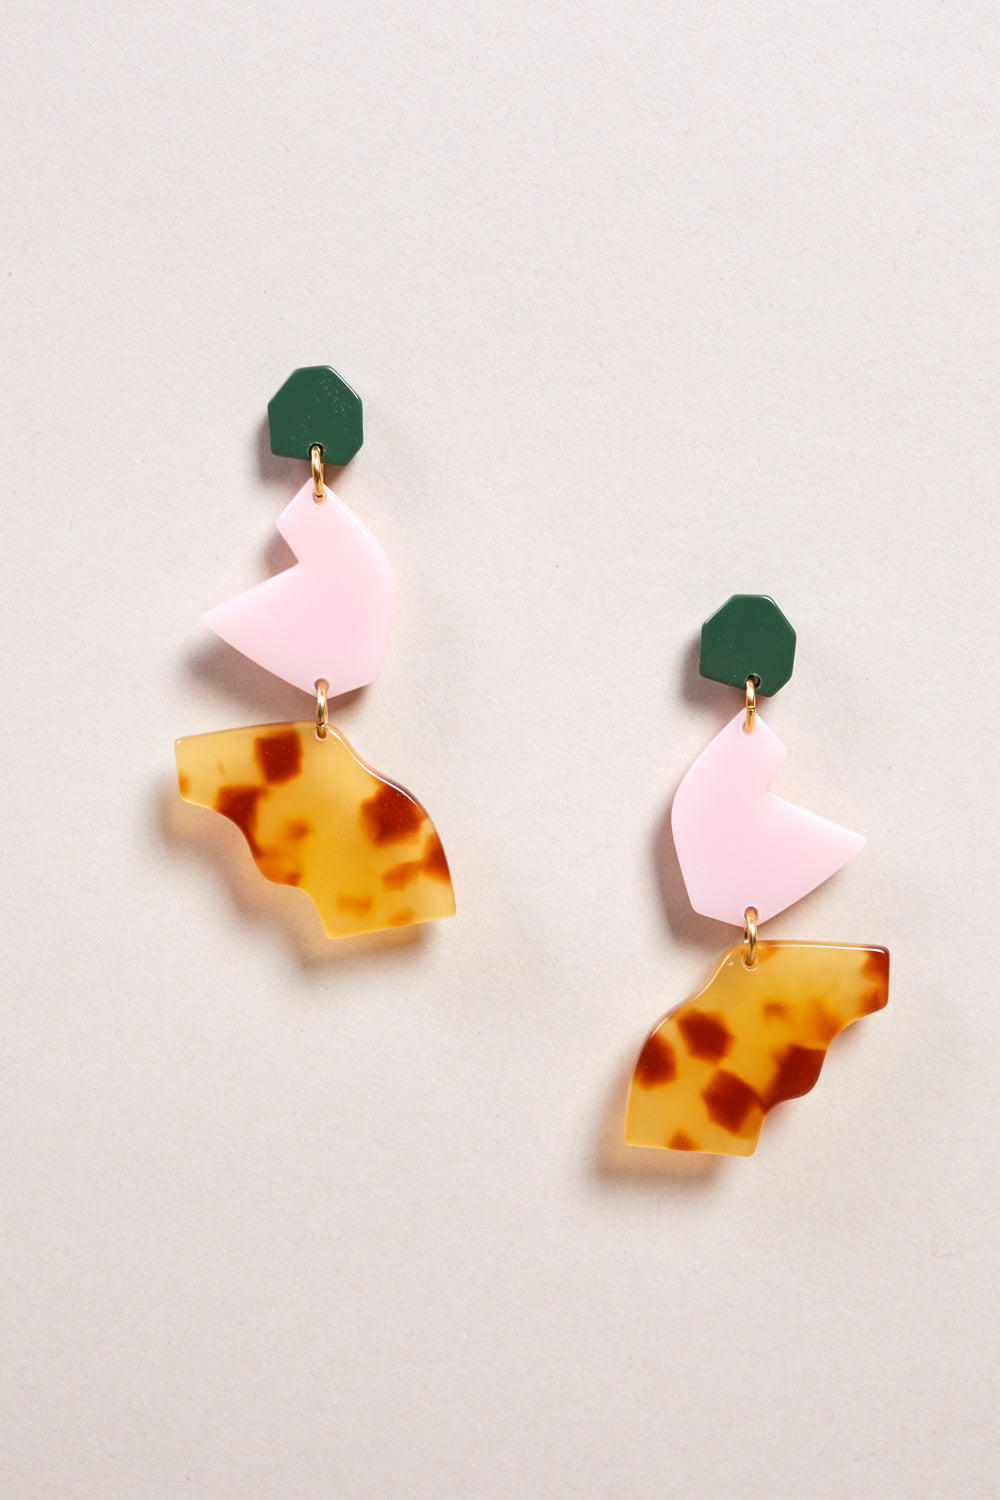 Intervalle Earring in Miel